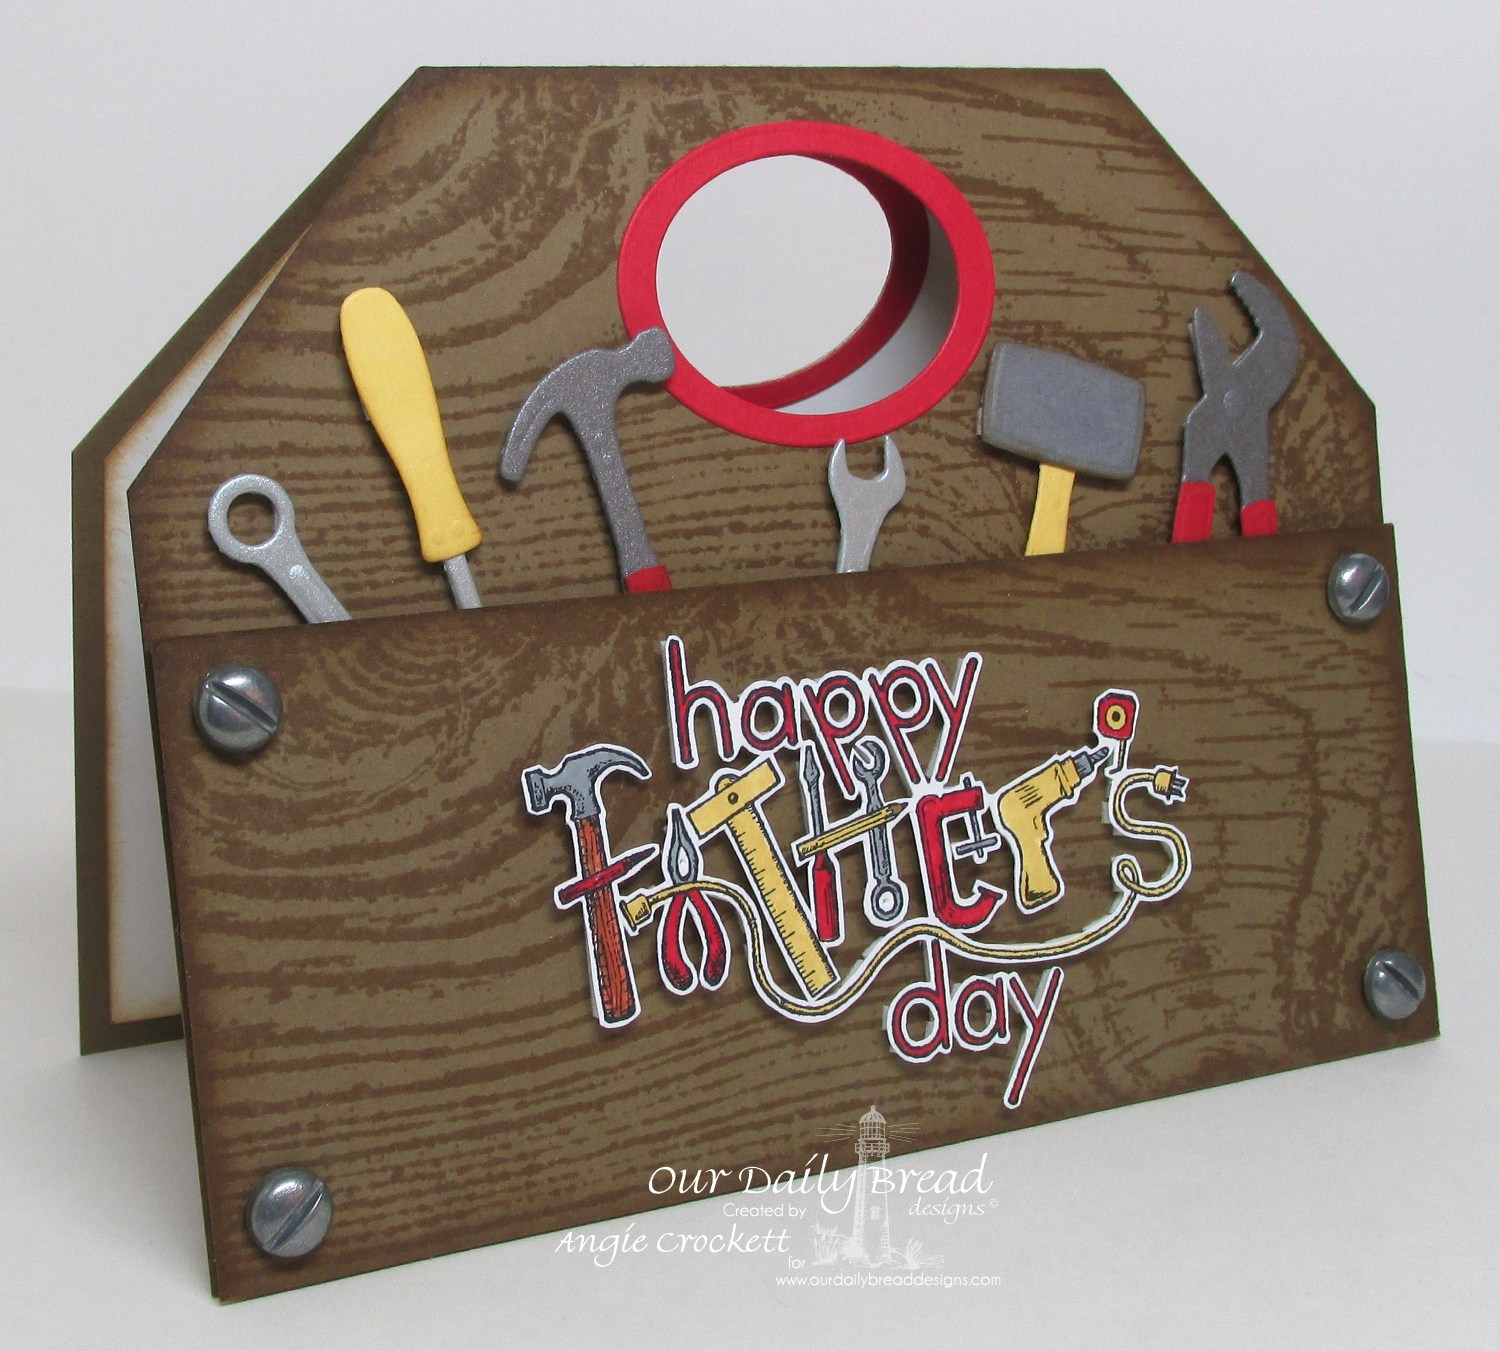 Lisa S Tool Time Father S Day Card: Body, Mind, Spirit, And STAMPS!: ODBD Anniversary Week